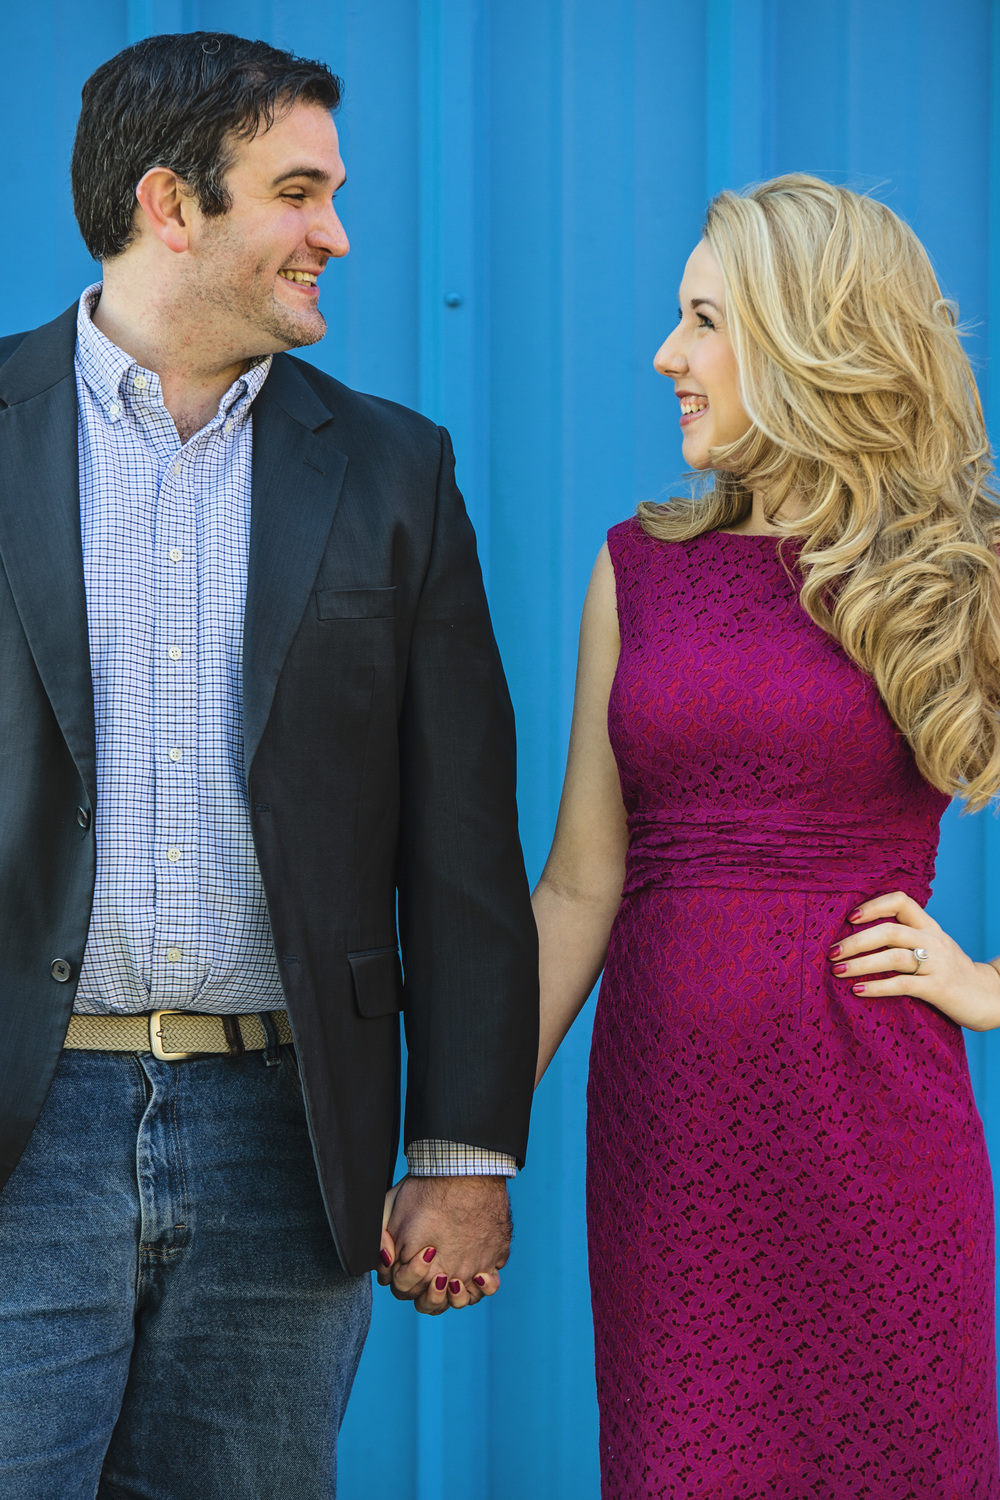 bookstore_fairytale_downtown_engagement_session_lynchburg_va004.jpg